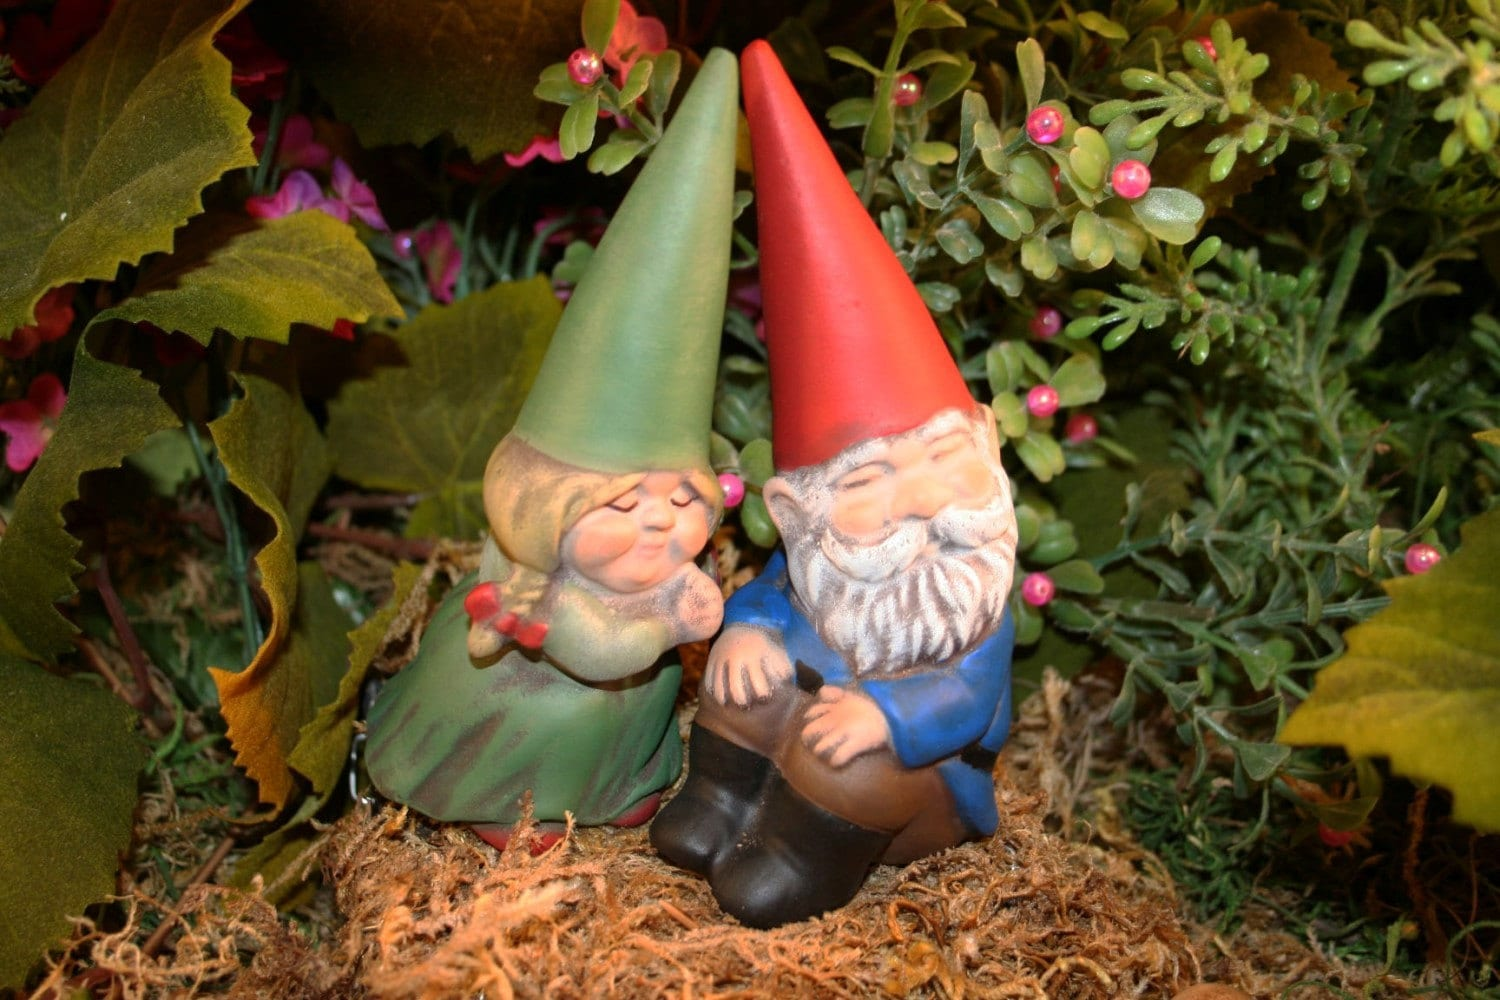 Gnome In Garden: MINIATURE GARDEN GNOMES Concrete Vintage Style Mr And Mrs